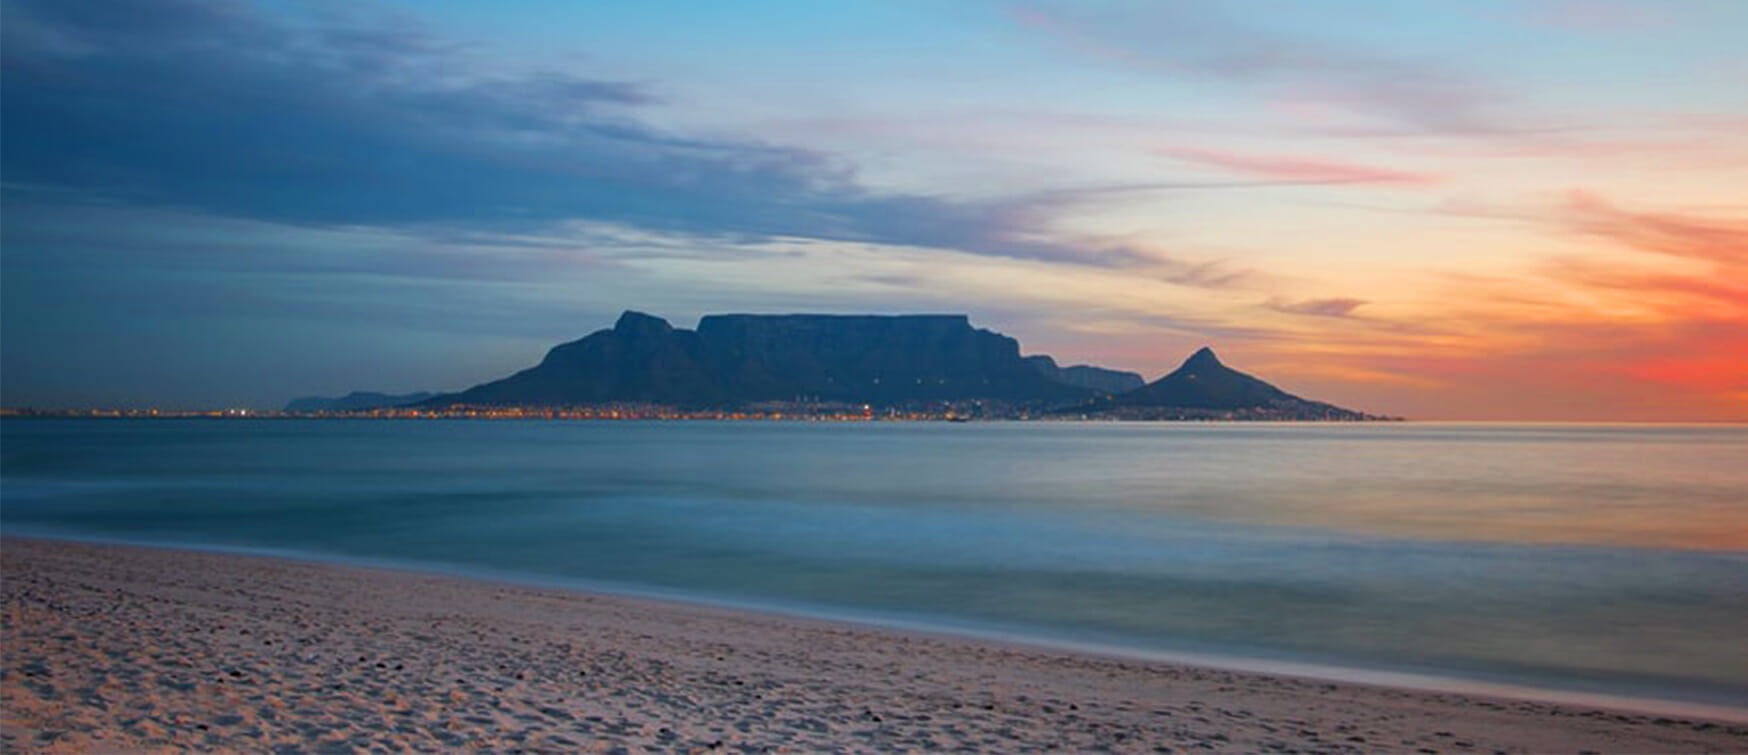 Sunset over Table Mountain | Breathtaking view of Tableview Mountain from the Bloubergstrand Coast, Cape Town